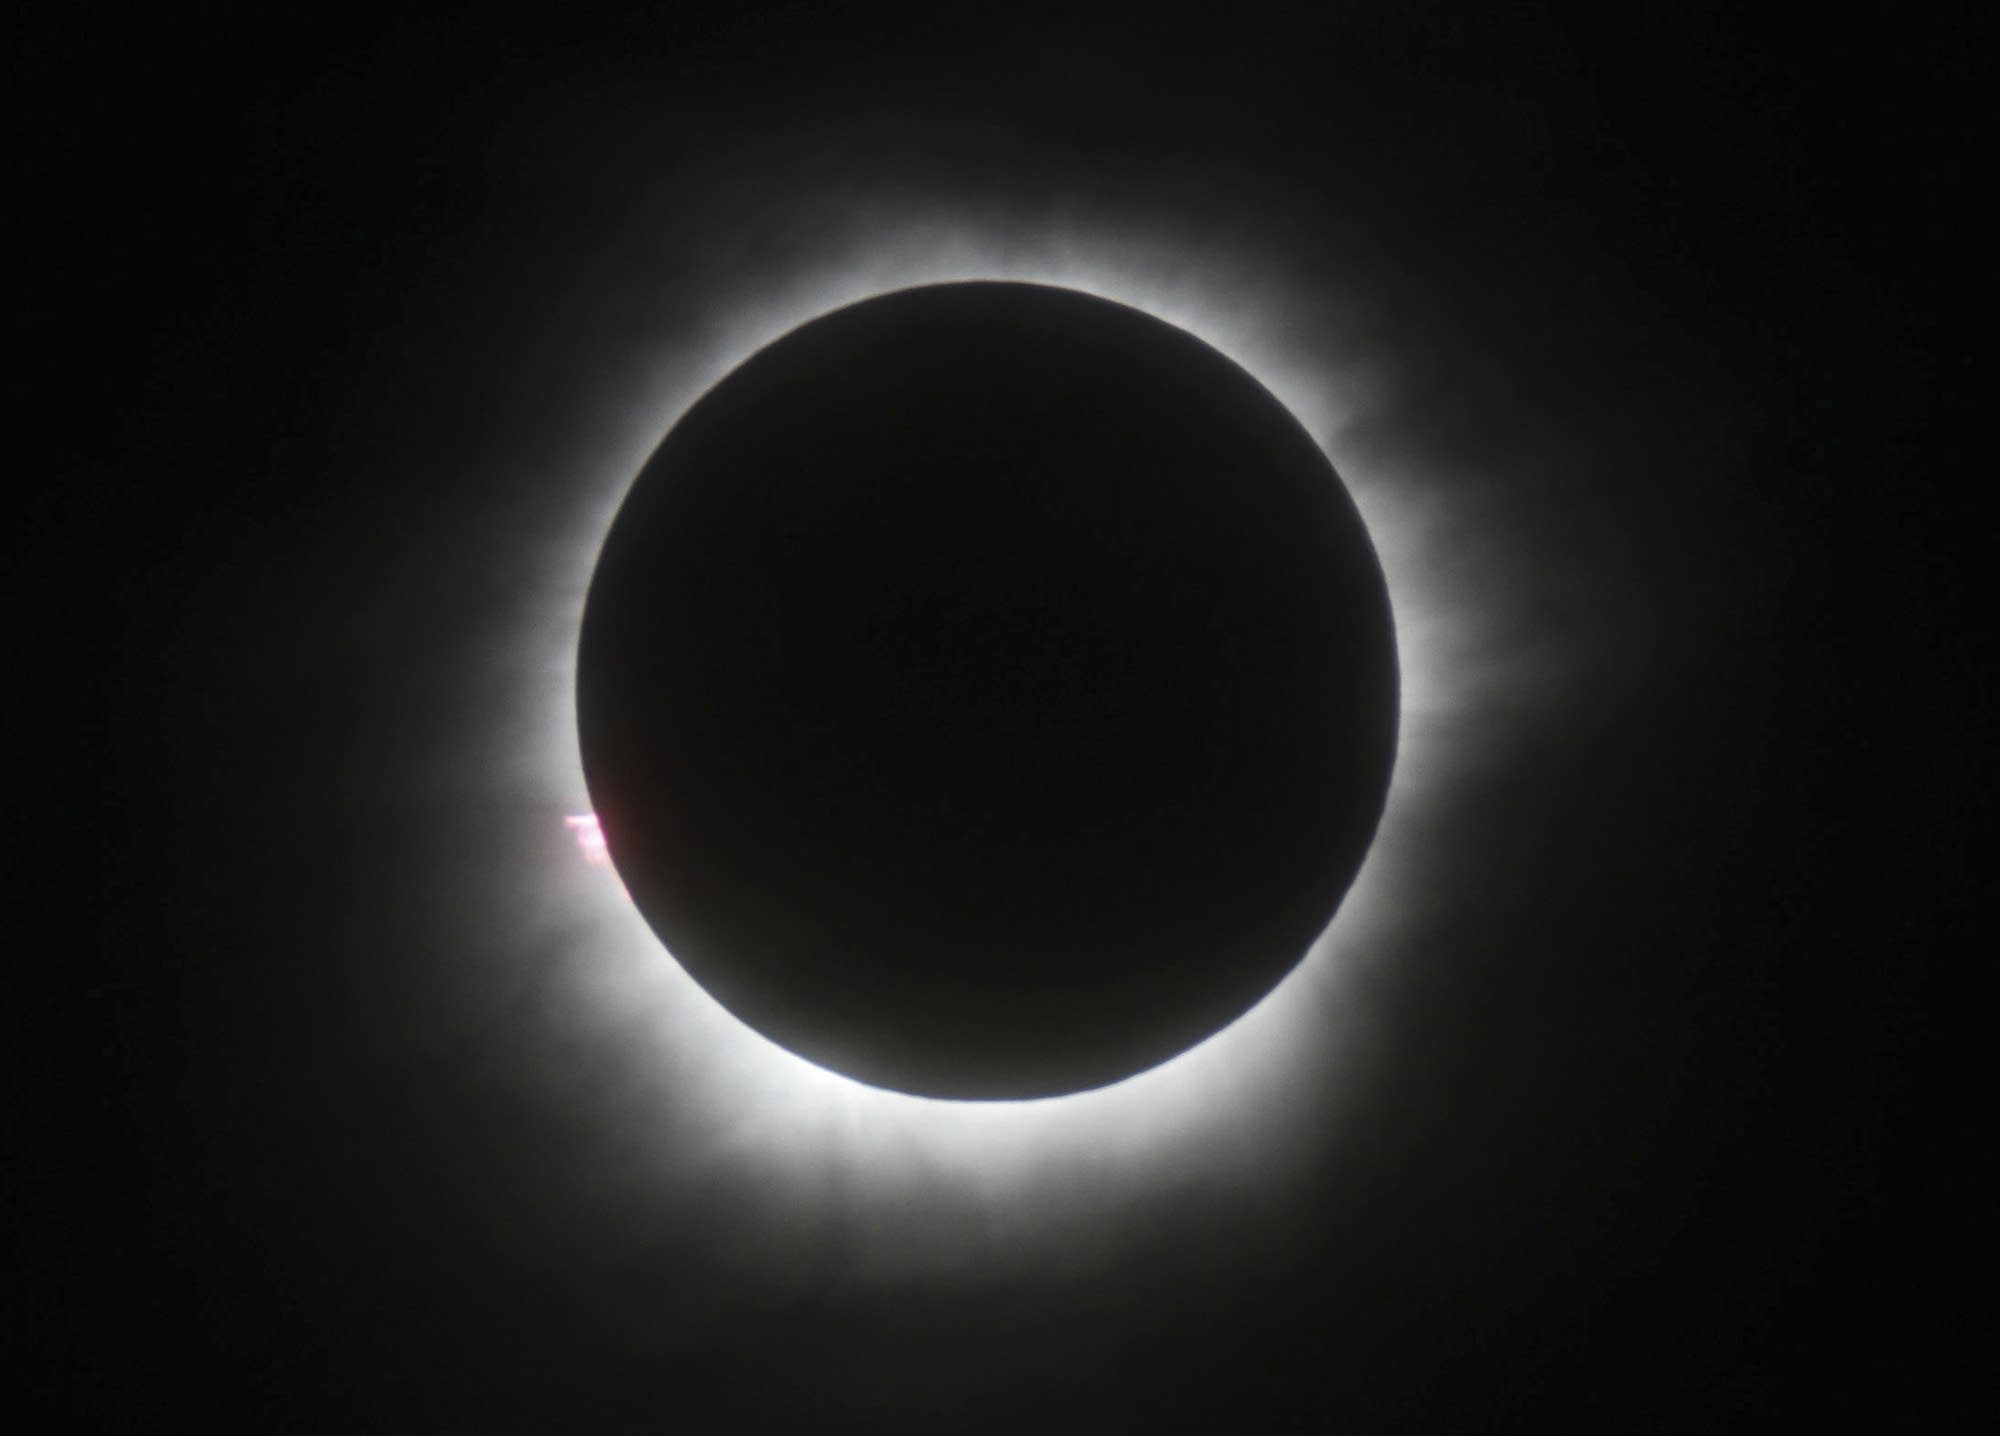 A total solar eclipse in Belitung, Indonesia in 2016